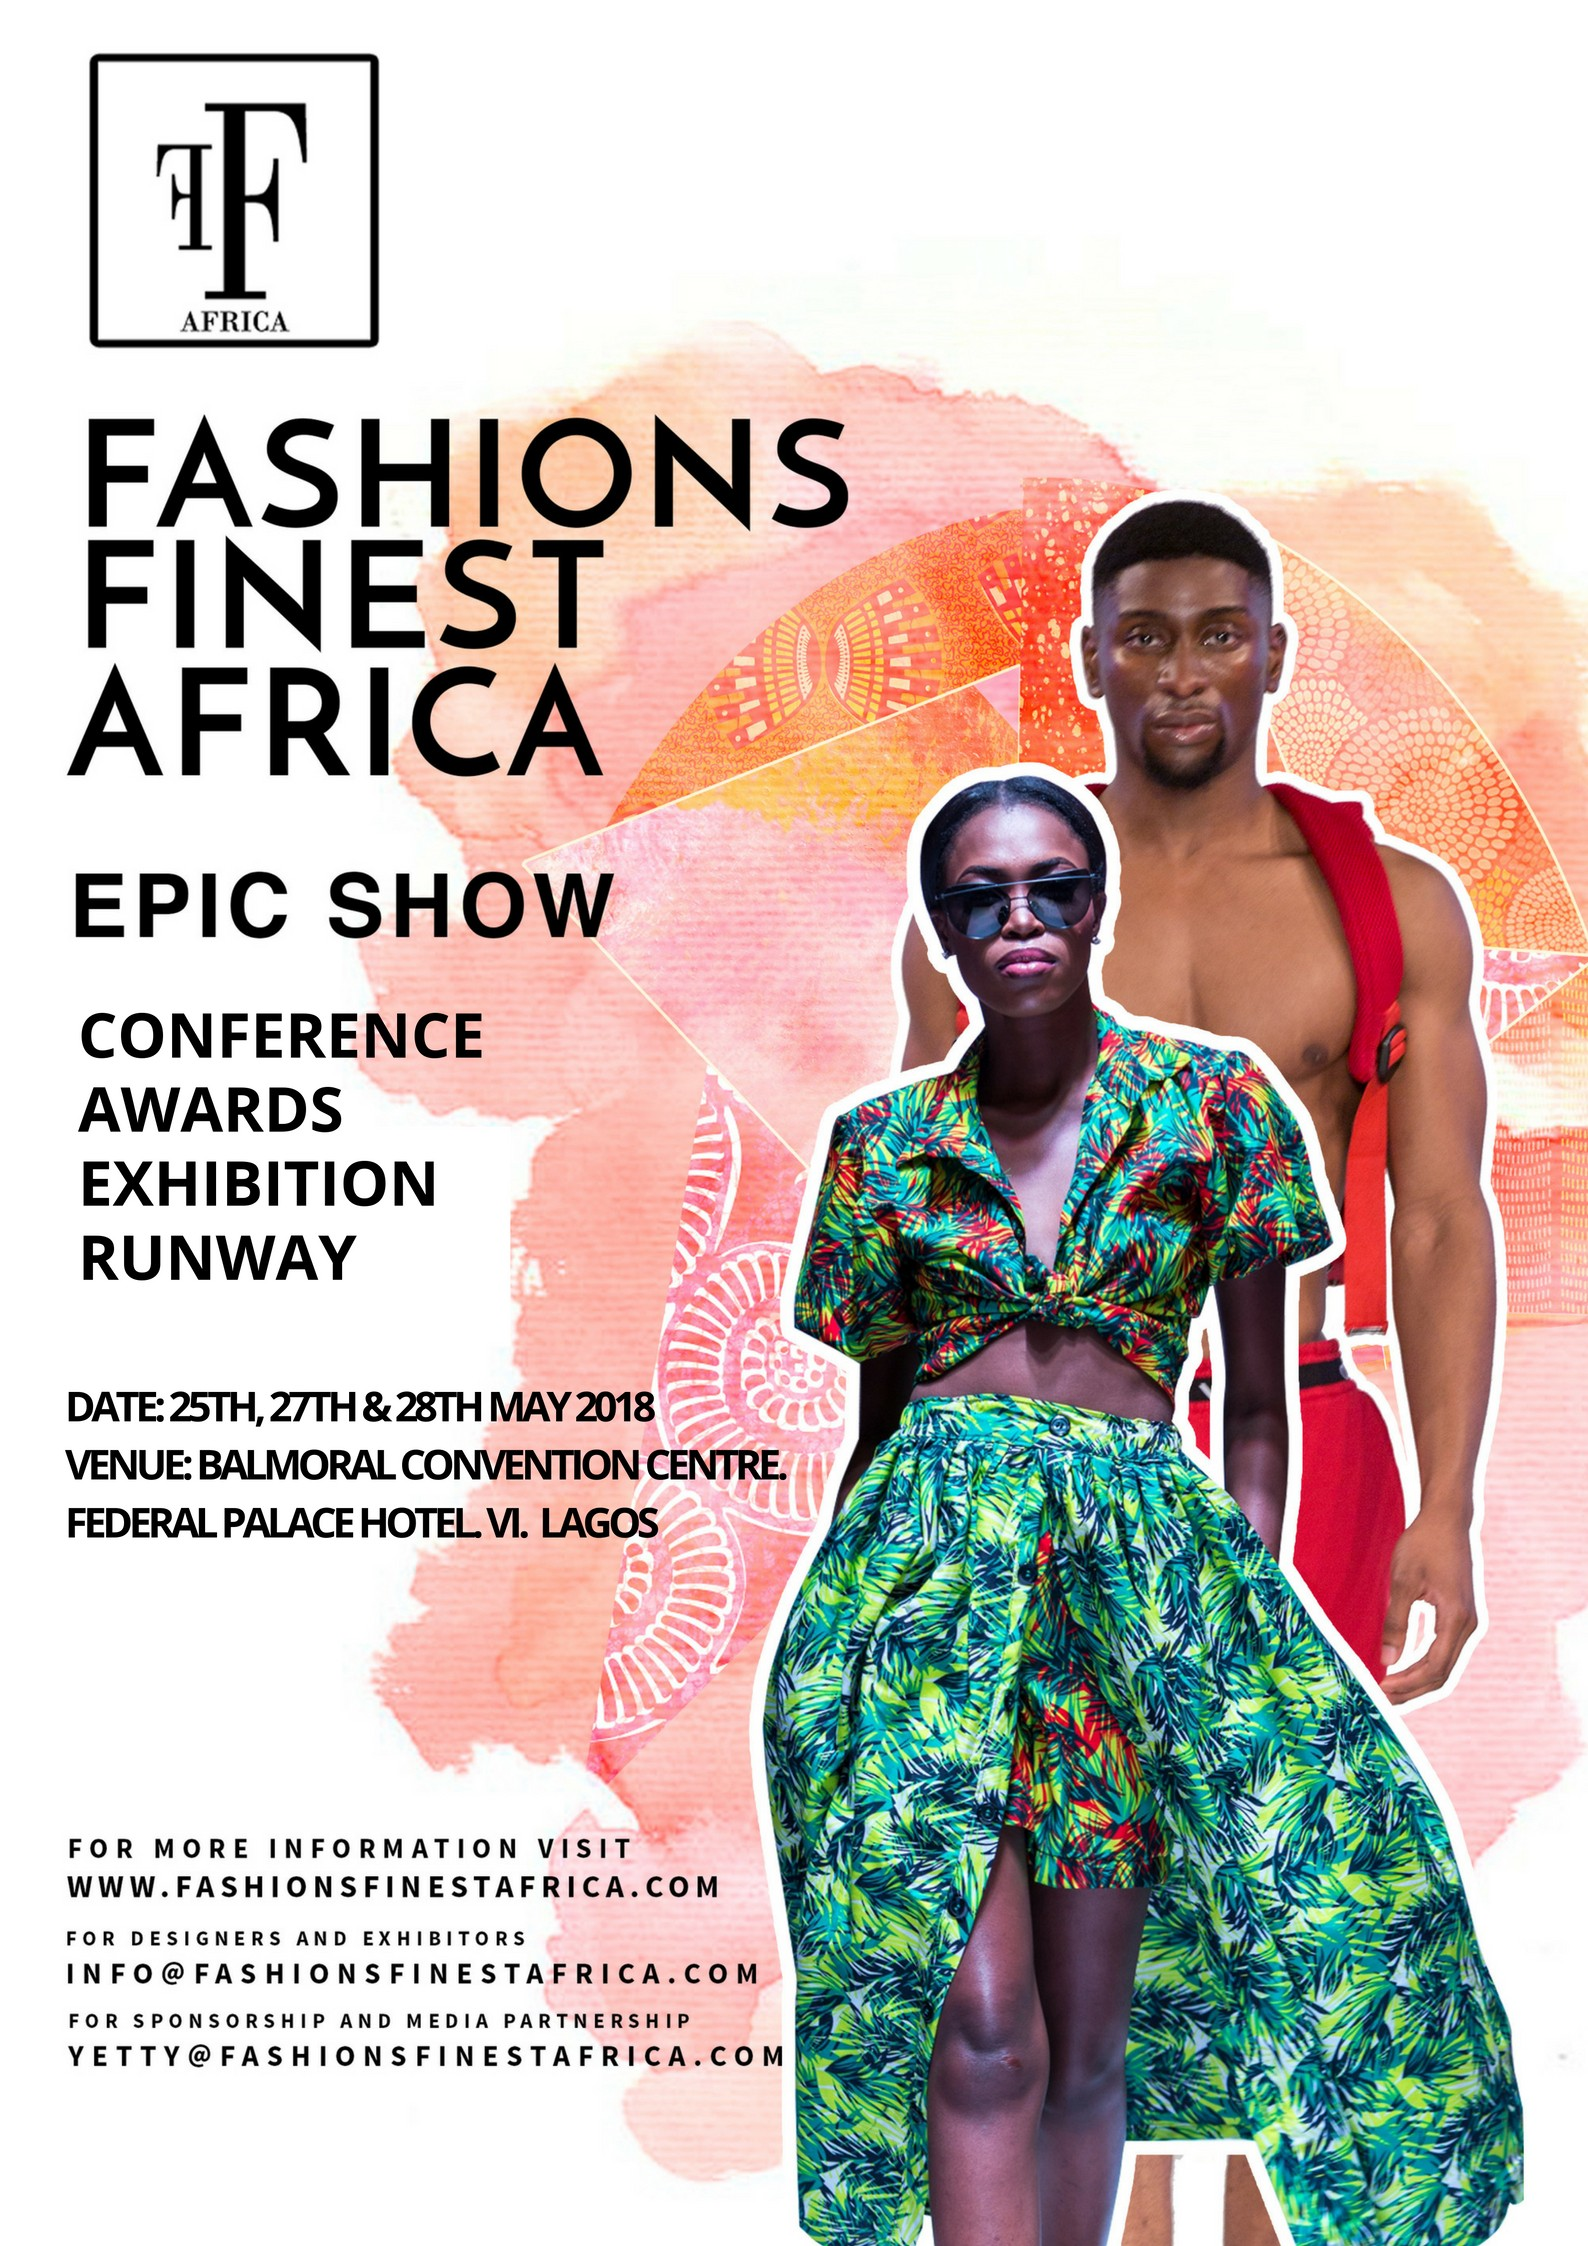 Nivea And Darling Sponsor Fashions Finest Africa